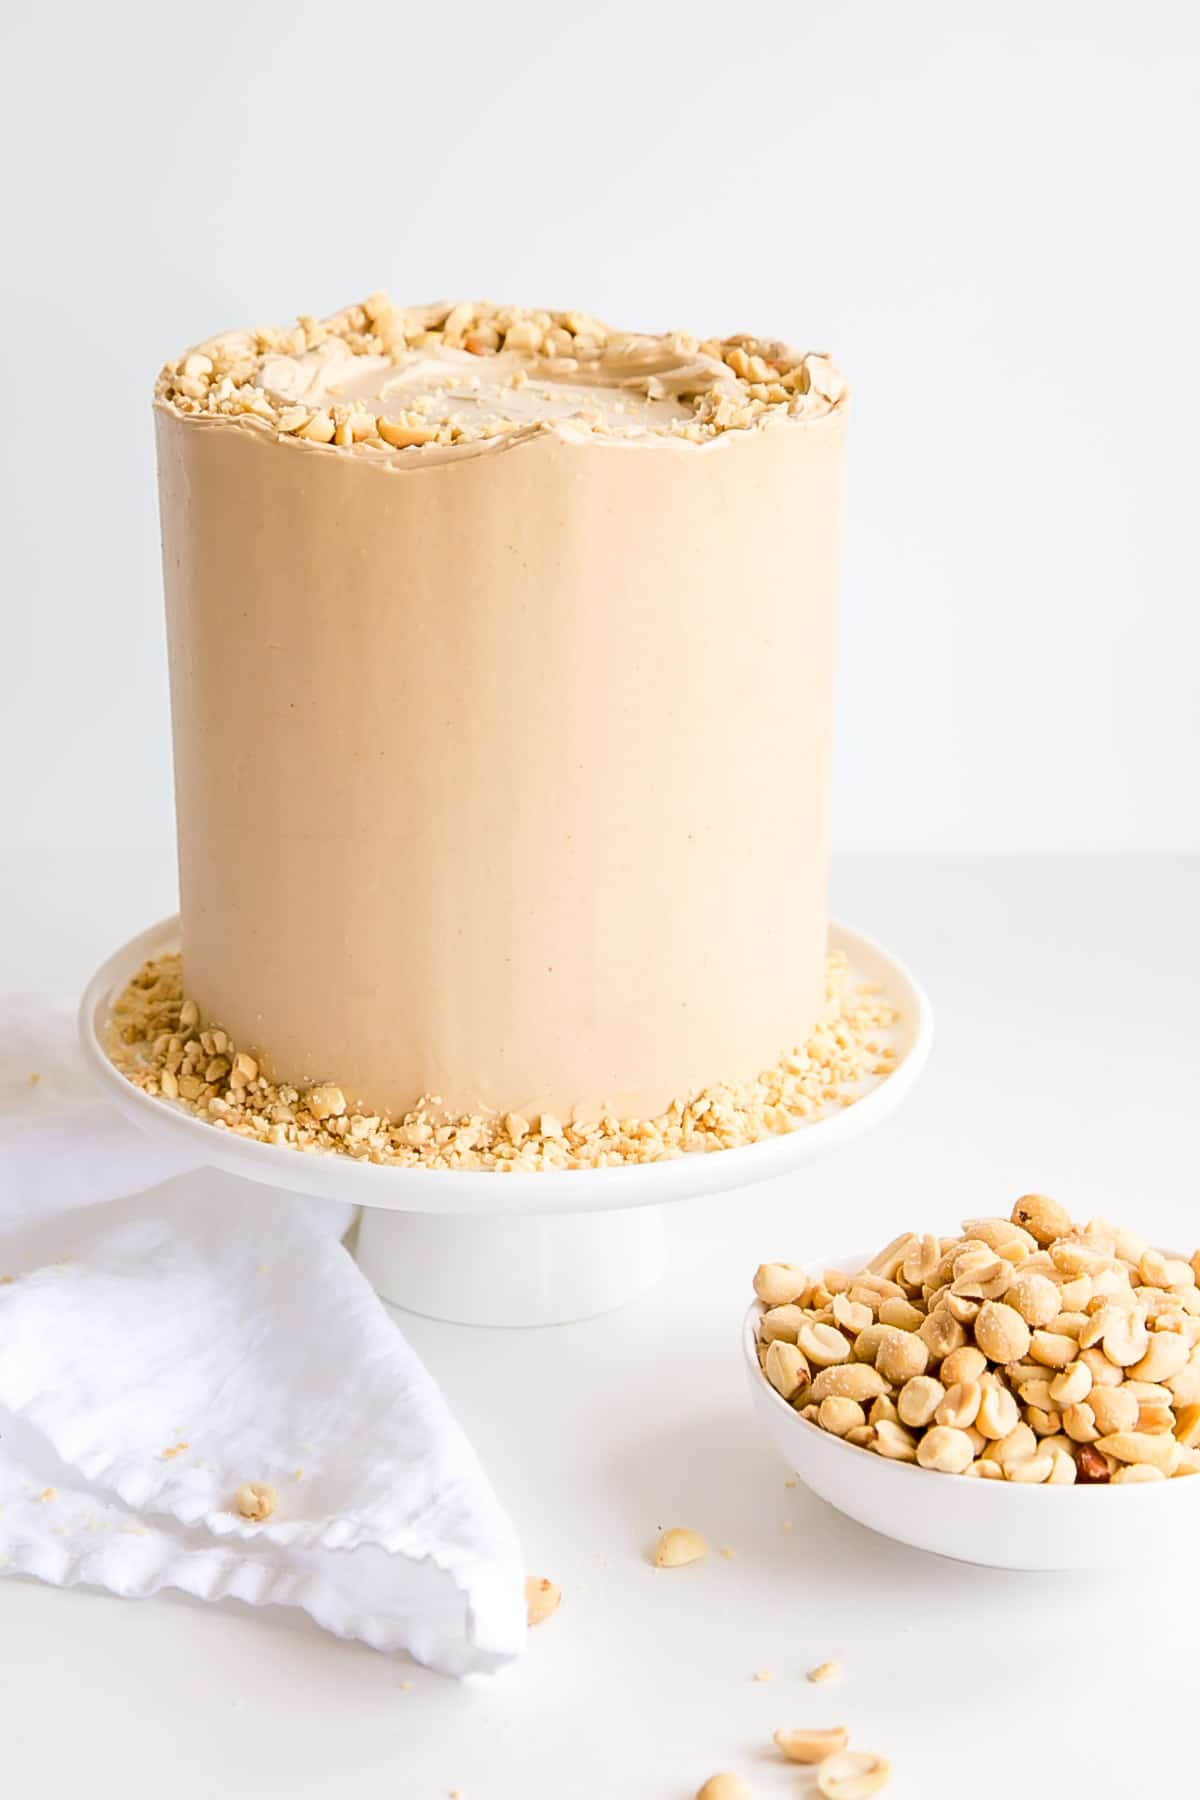 Cake on a white cake stand with a bowl of peanuts next to it.